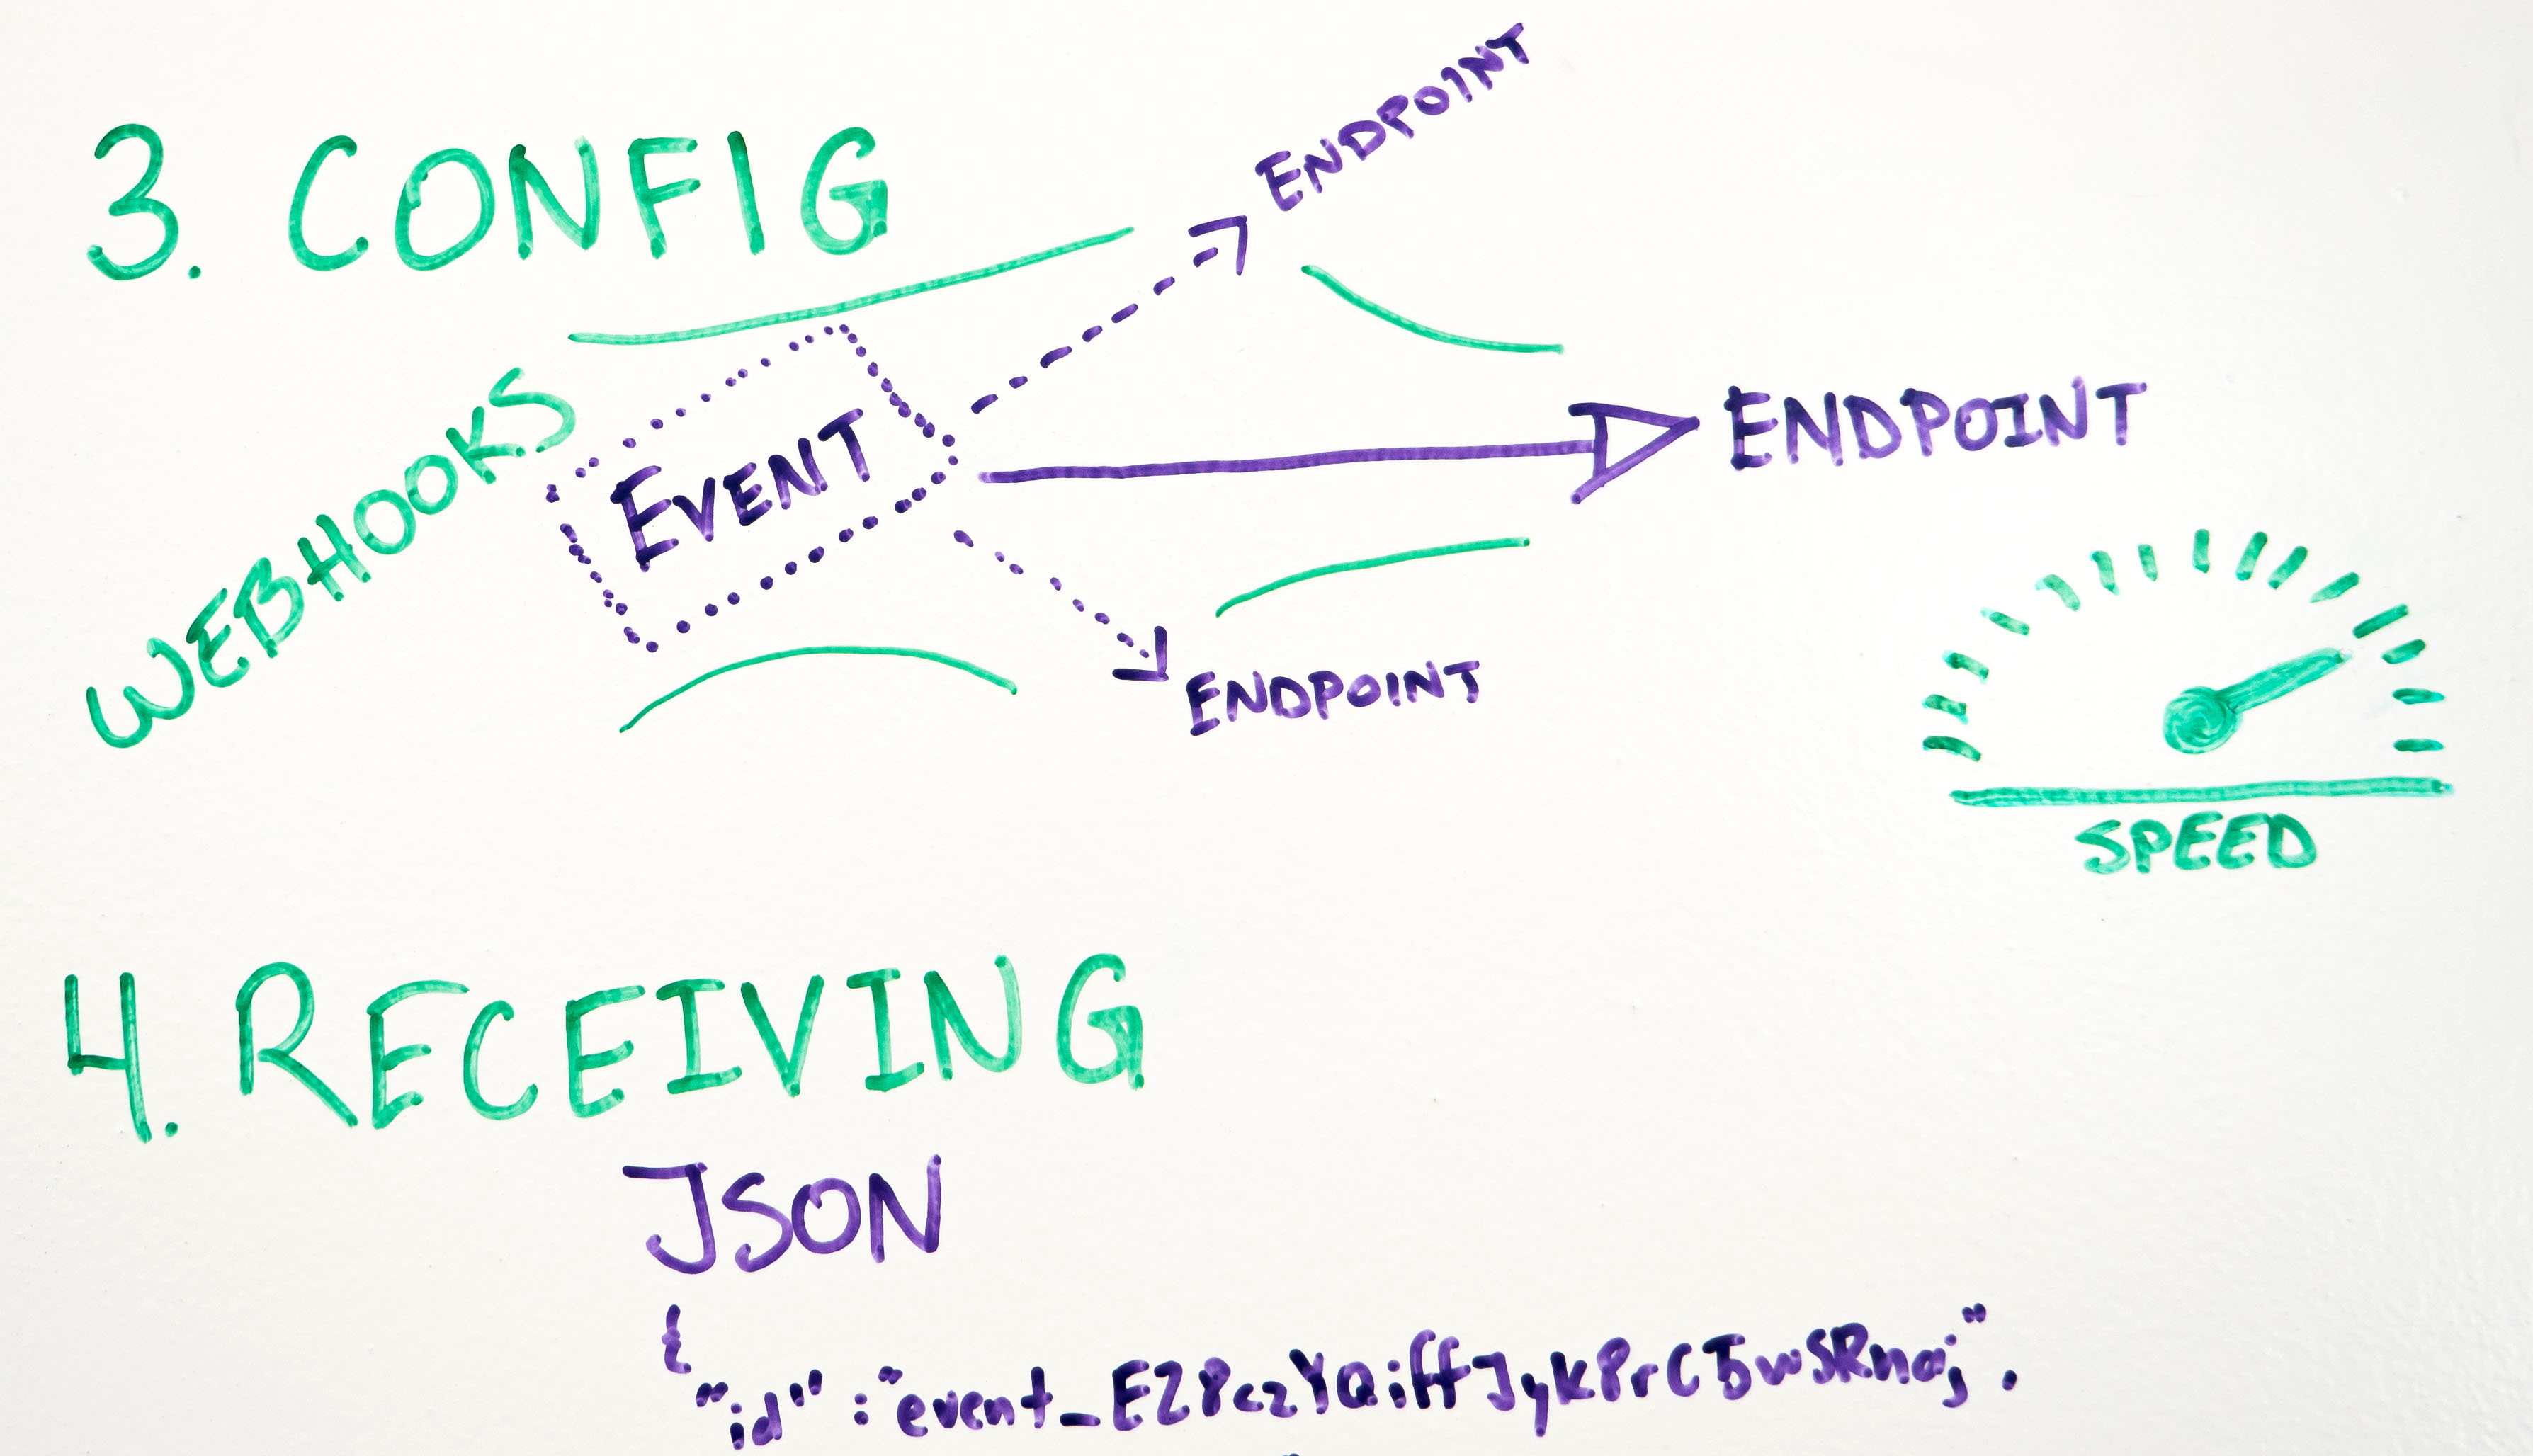 Events and webhooks: Everything you need to know